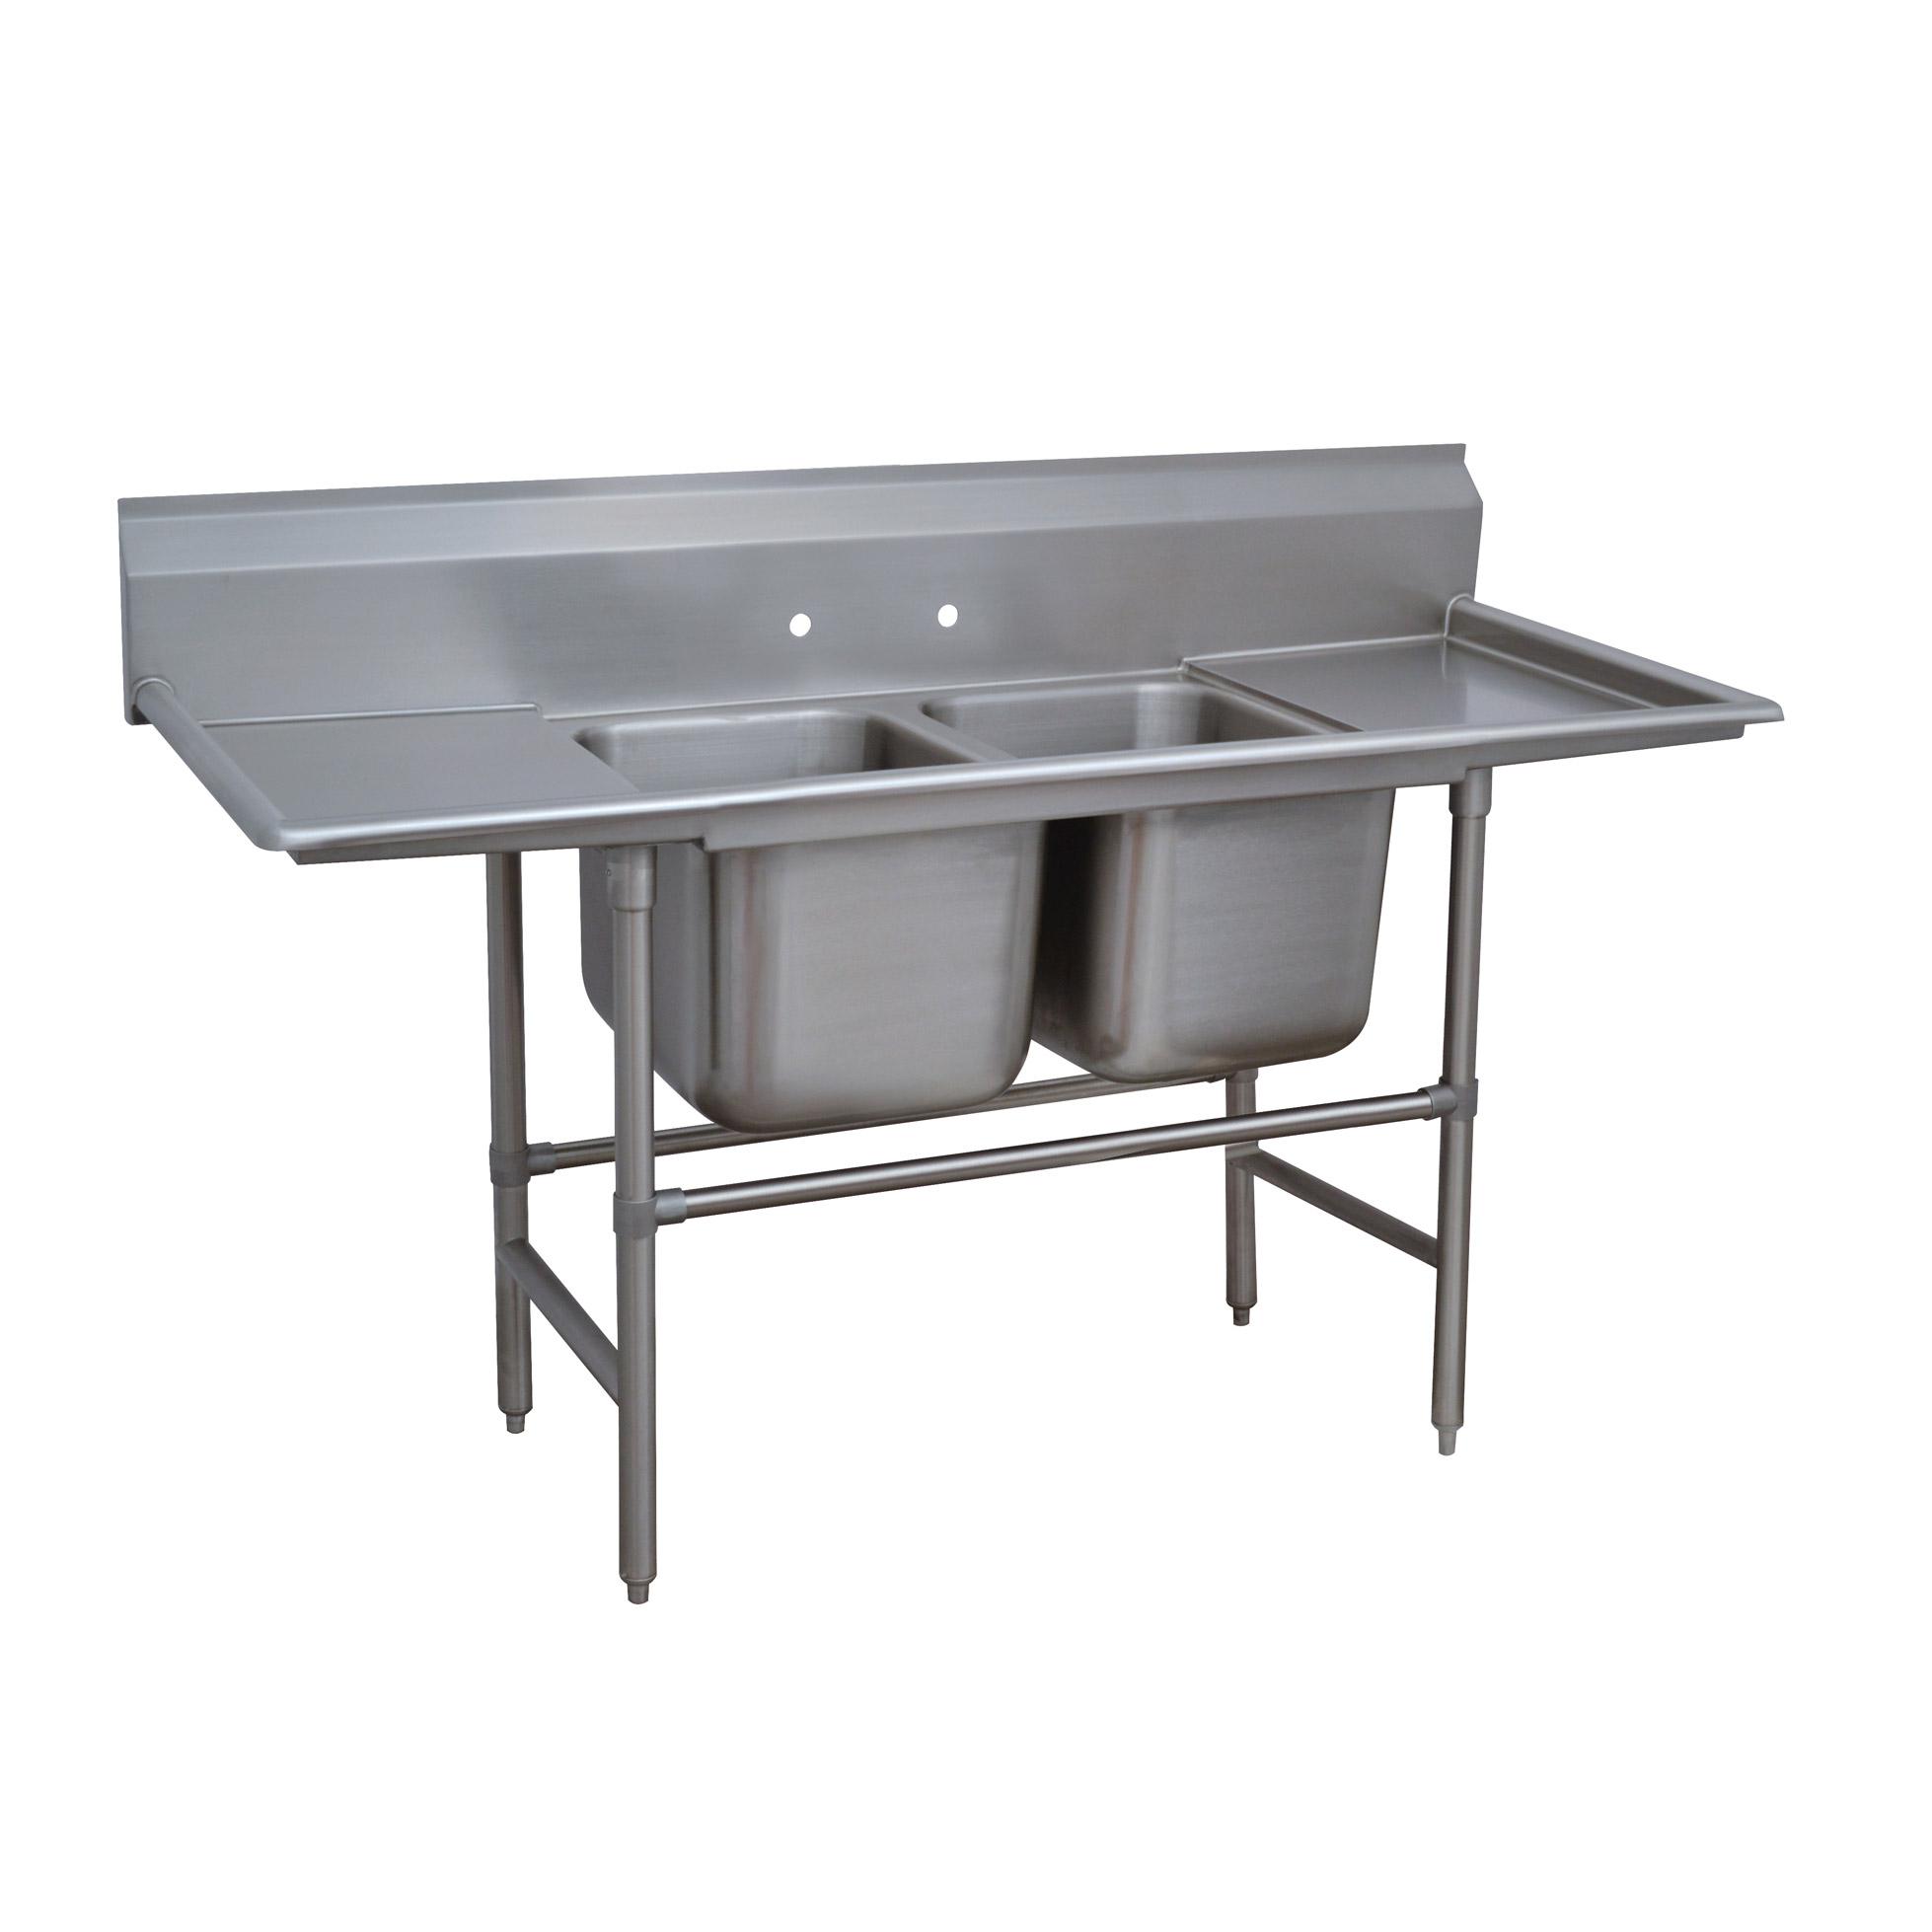 Advance Tabco 94-22-40-18RL sink, (2) two compartment